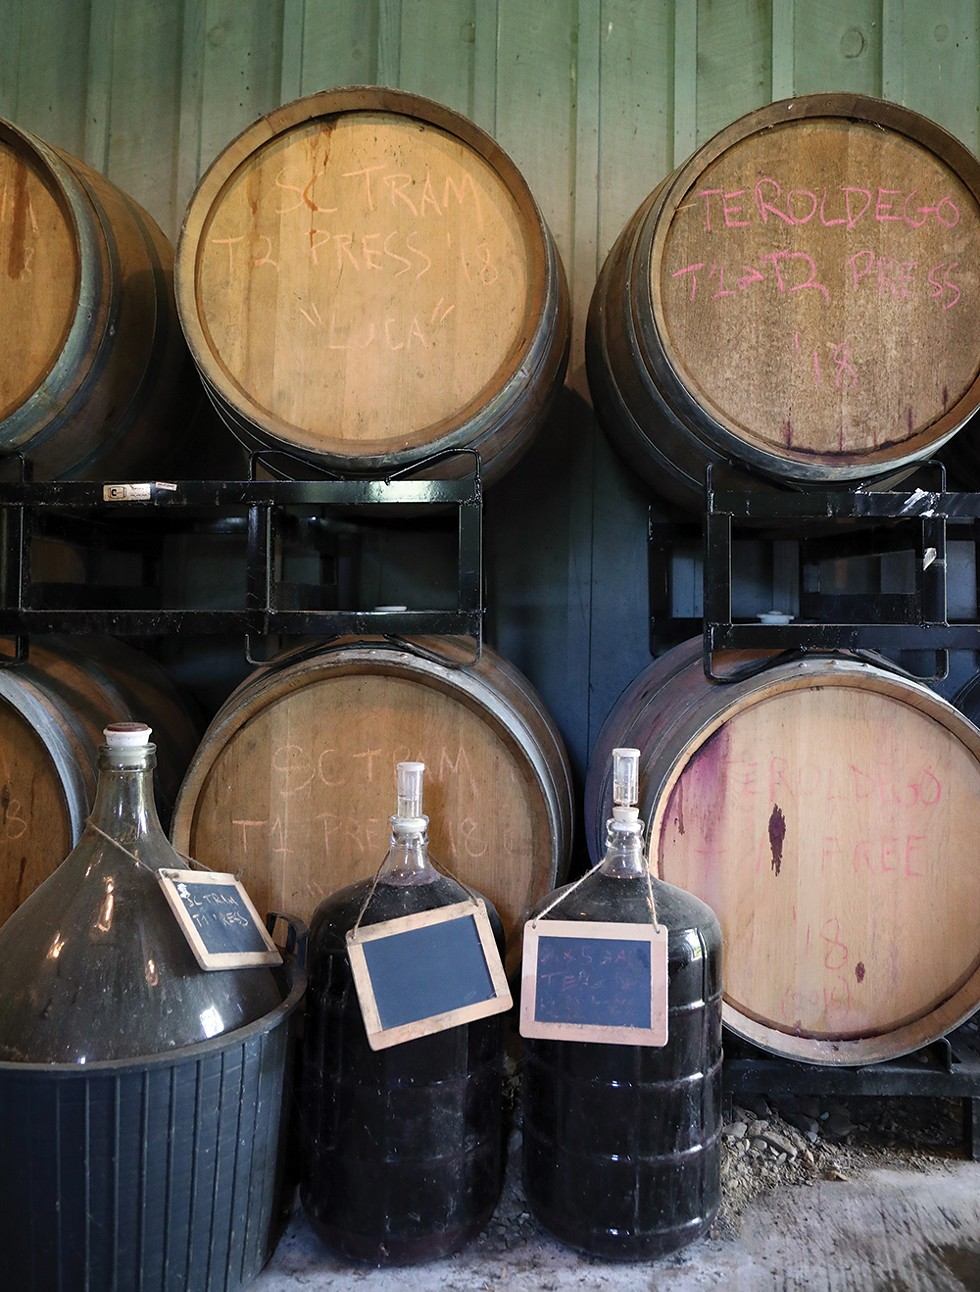 The glass demijohns on the floor hold wine used for topping up the barrels during fermentation and aging. - PHOTO: PETER BARRETT